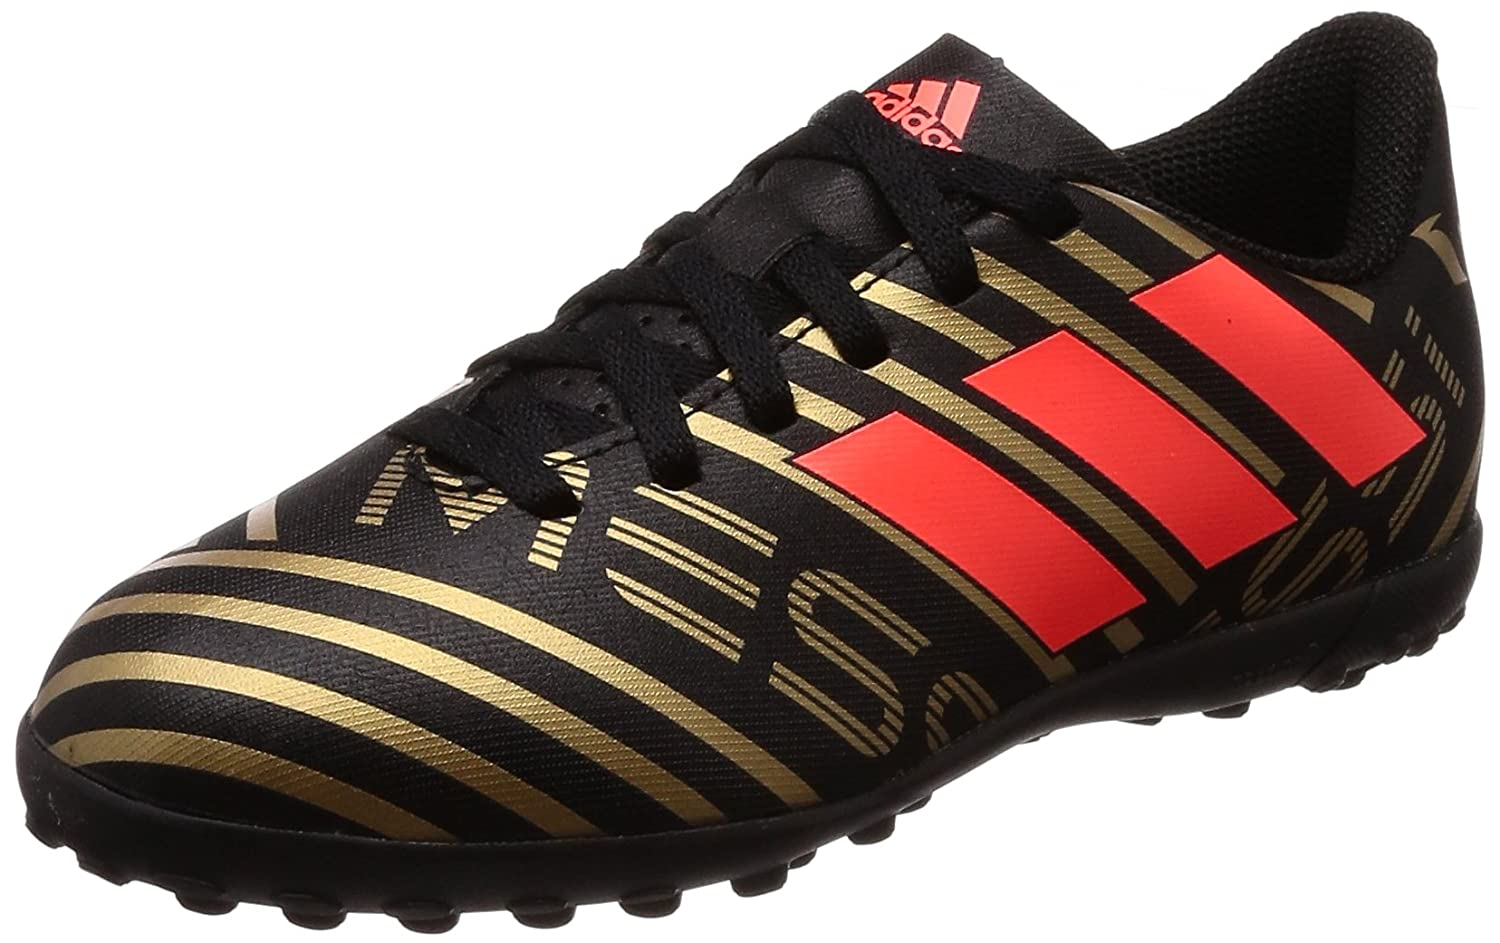 vídeo orientación izquierda  Adidas Boy's Nemeziz Messi Tango 17.4 Tf J Cblack/Solred/Tagome Sports  Shoes - 13 Kids UK/India (31.5 EU)(CP9217): Buy Online at Low Prices in  India - Amazon.in